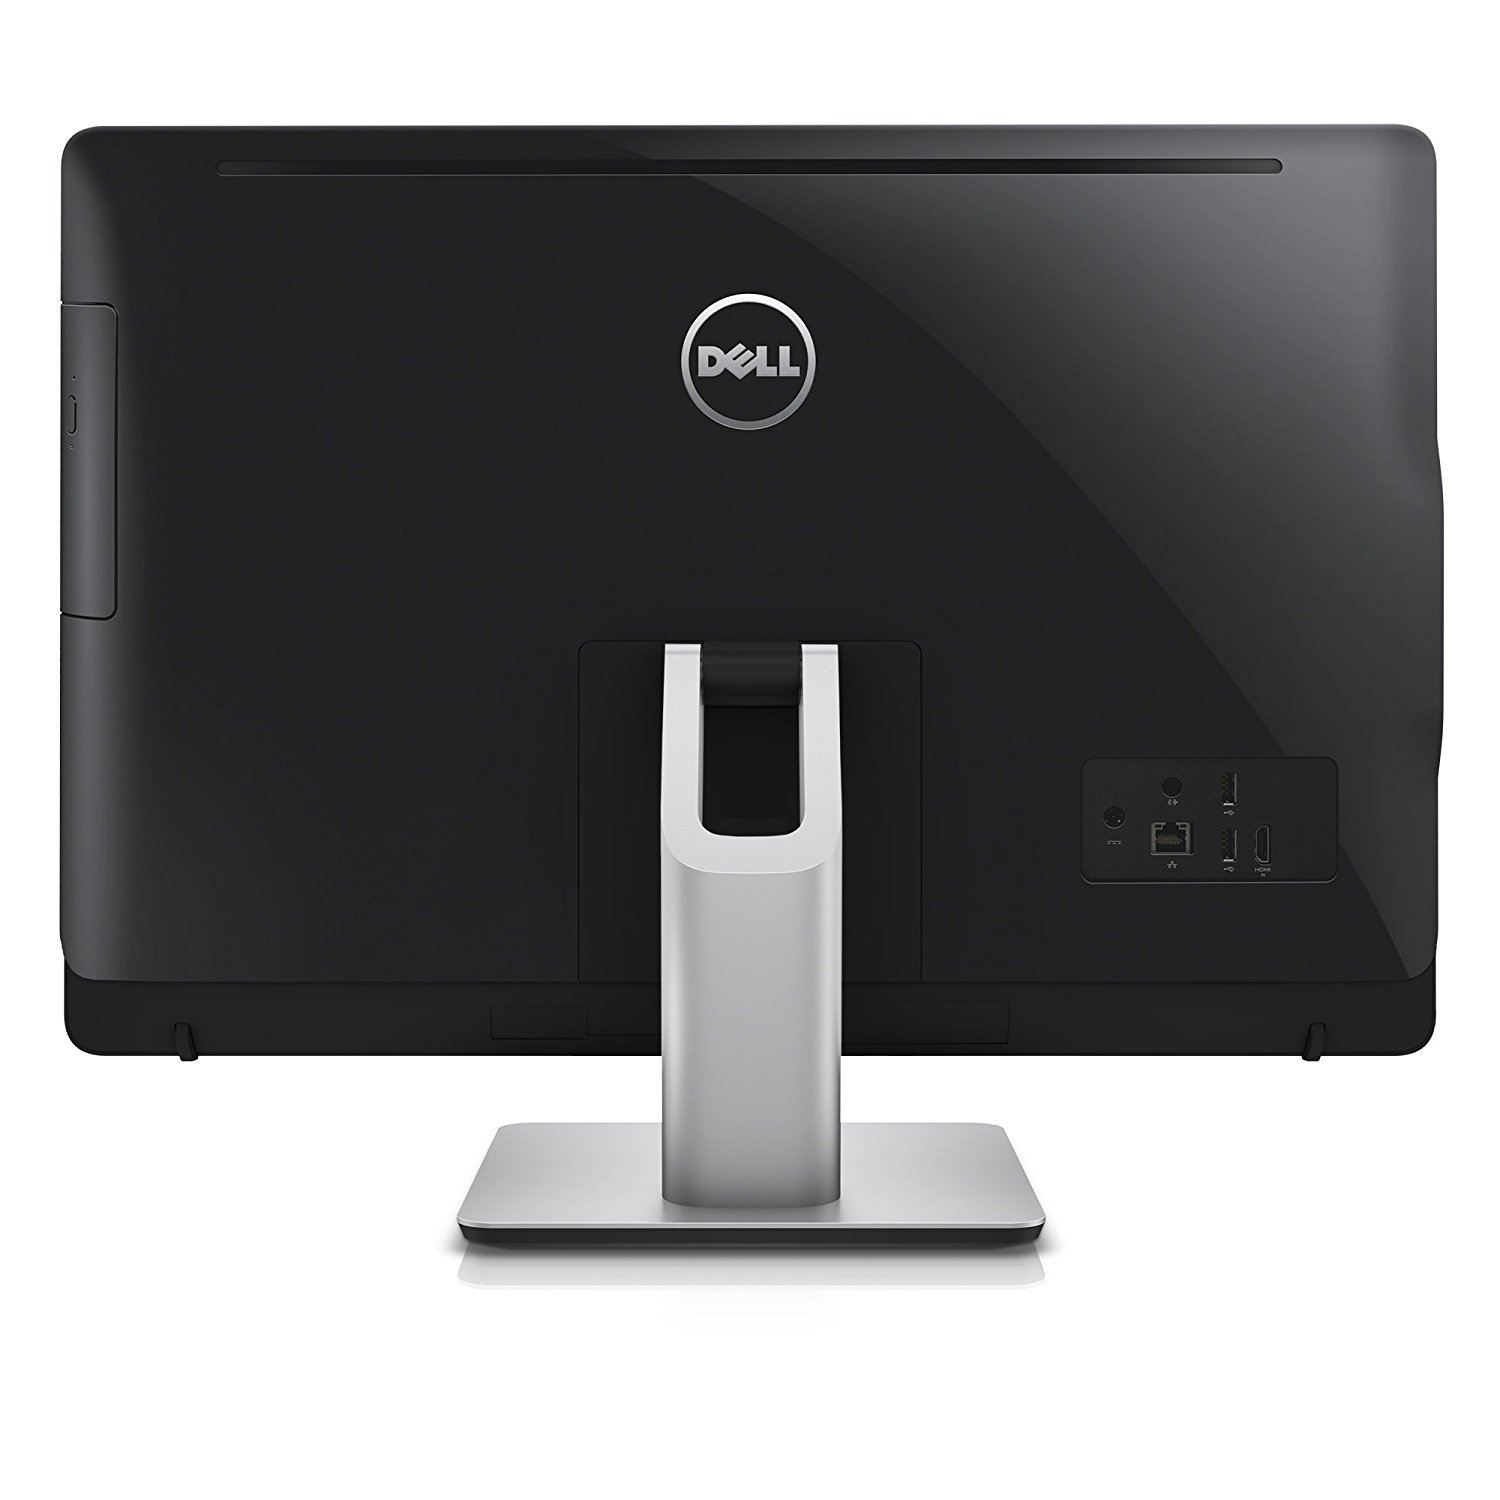 Dell Inspiron Flagship 23.8'' All-in-One Full HD Touchscreen Desktop - Intel Core i7-7500U up to 3.5GHz, 16GB DDR4, 1TB HDD, DVDRW, 802.11ac, Bluetooth, MaxxAudioR Pro, Webacm, Keyboard & Mouse, Win 10 by Dell (Image #5)